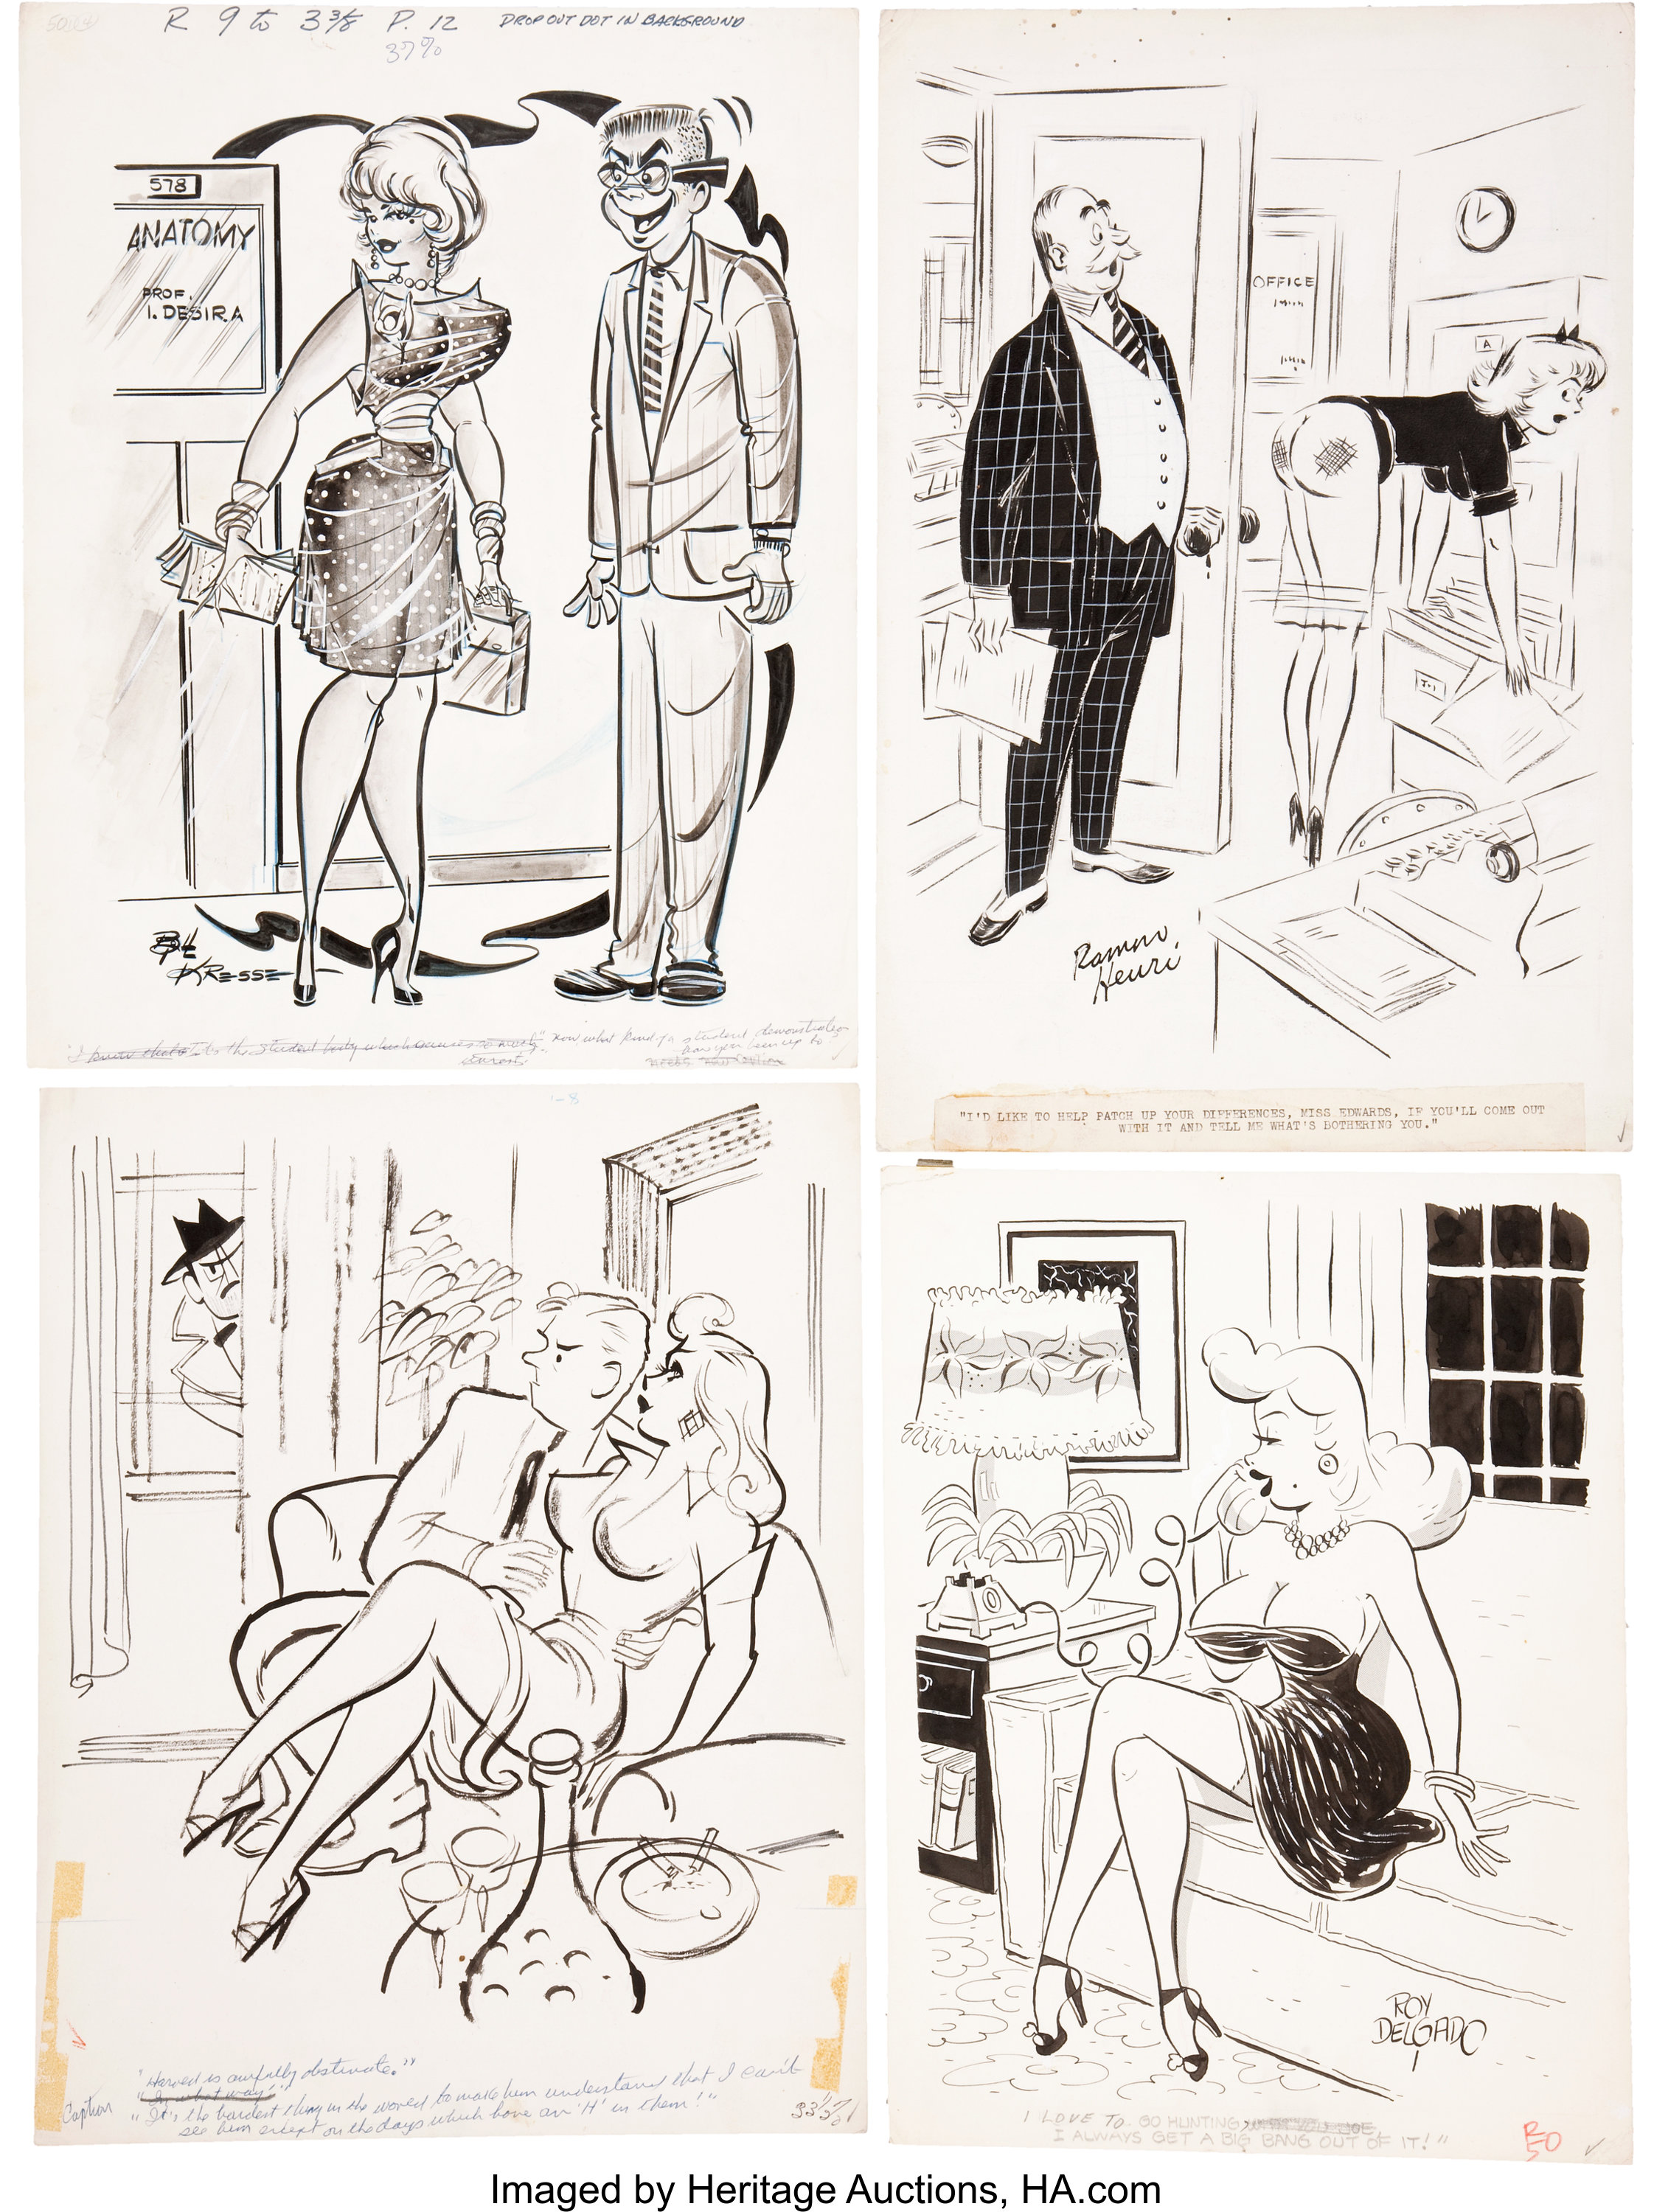 Humorama cartoon original art group humorama 1950s 60s lot 12500 heritage auctions